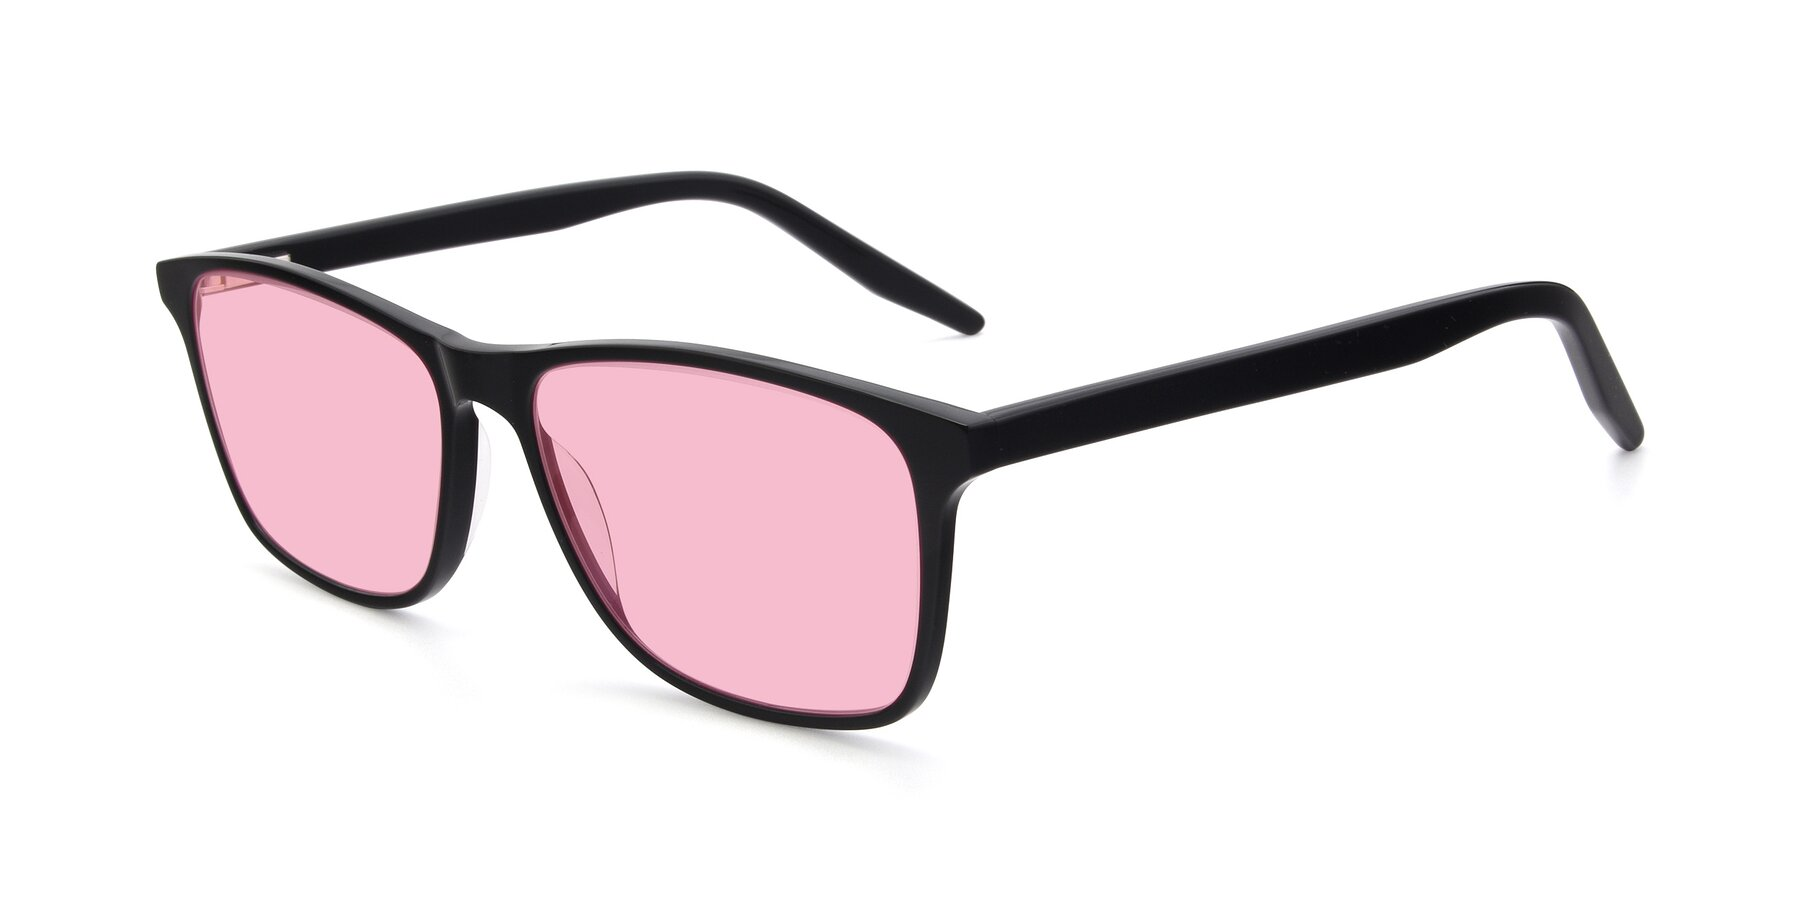 Angle of 17500 in Black with Medium Pink Tinted Lenses